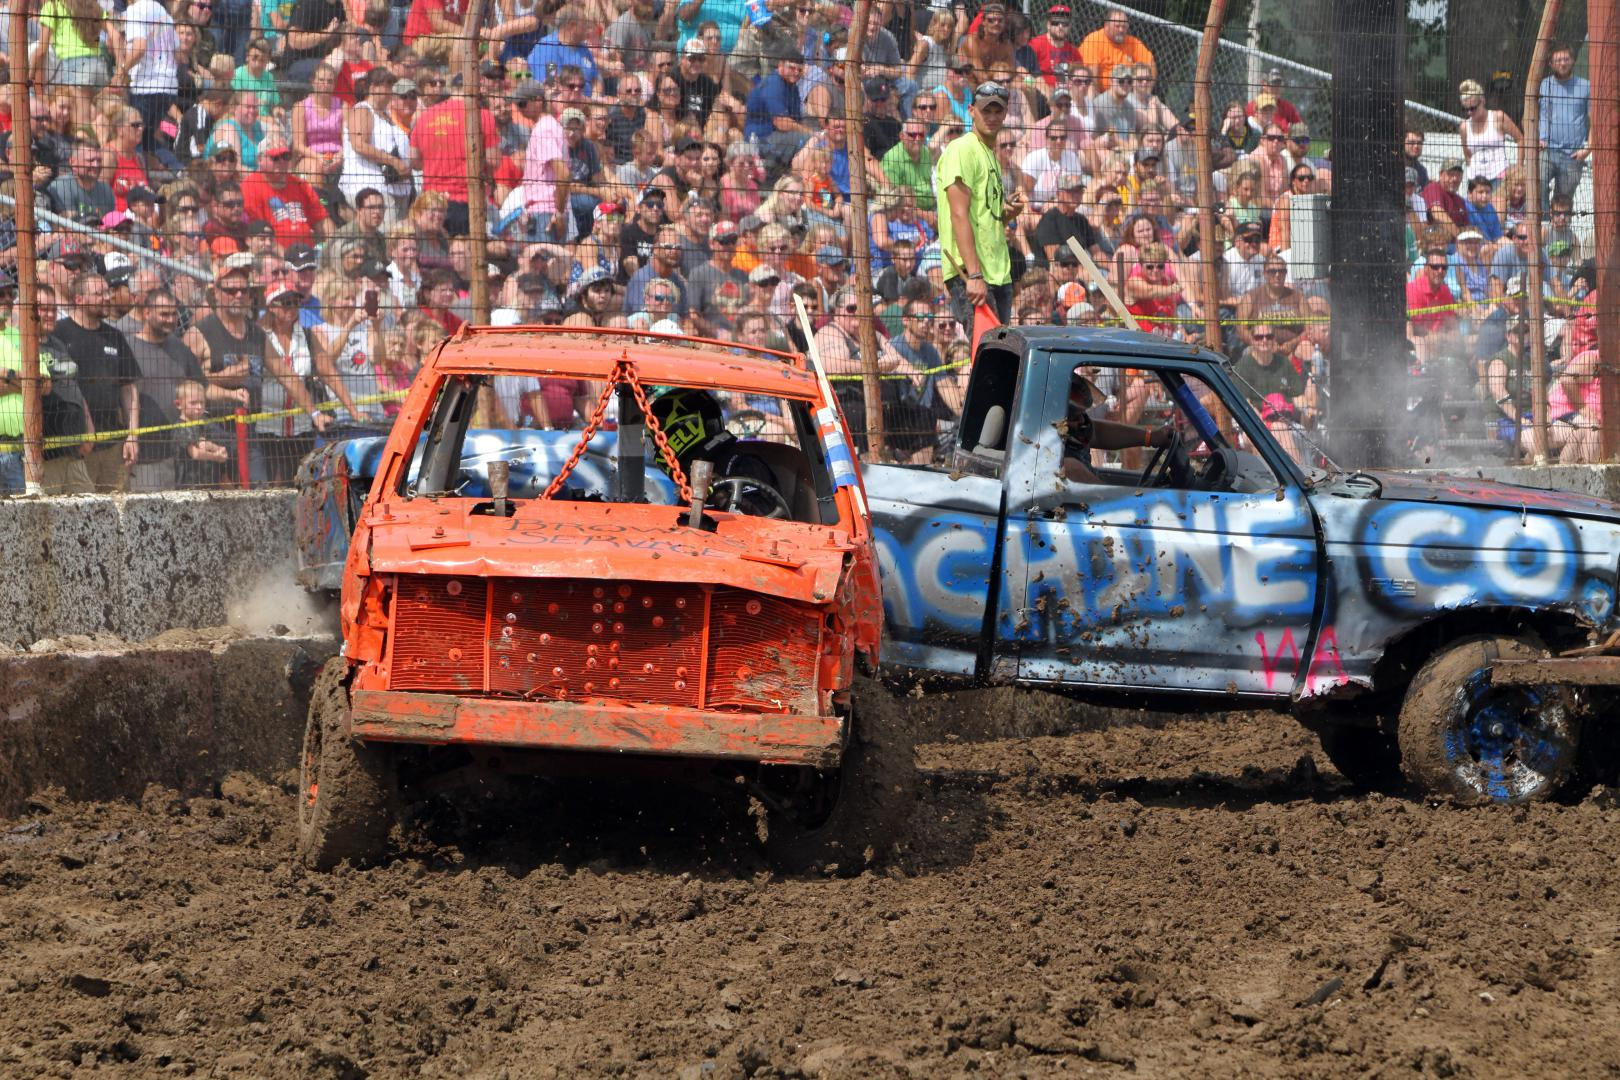 Action Auto Demolition Derby Wisconsin